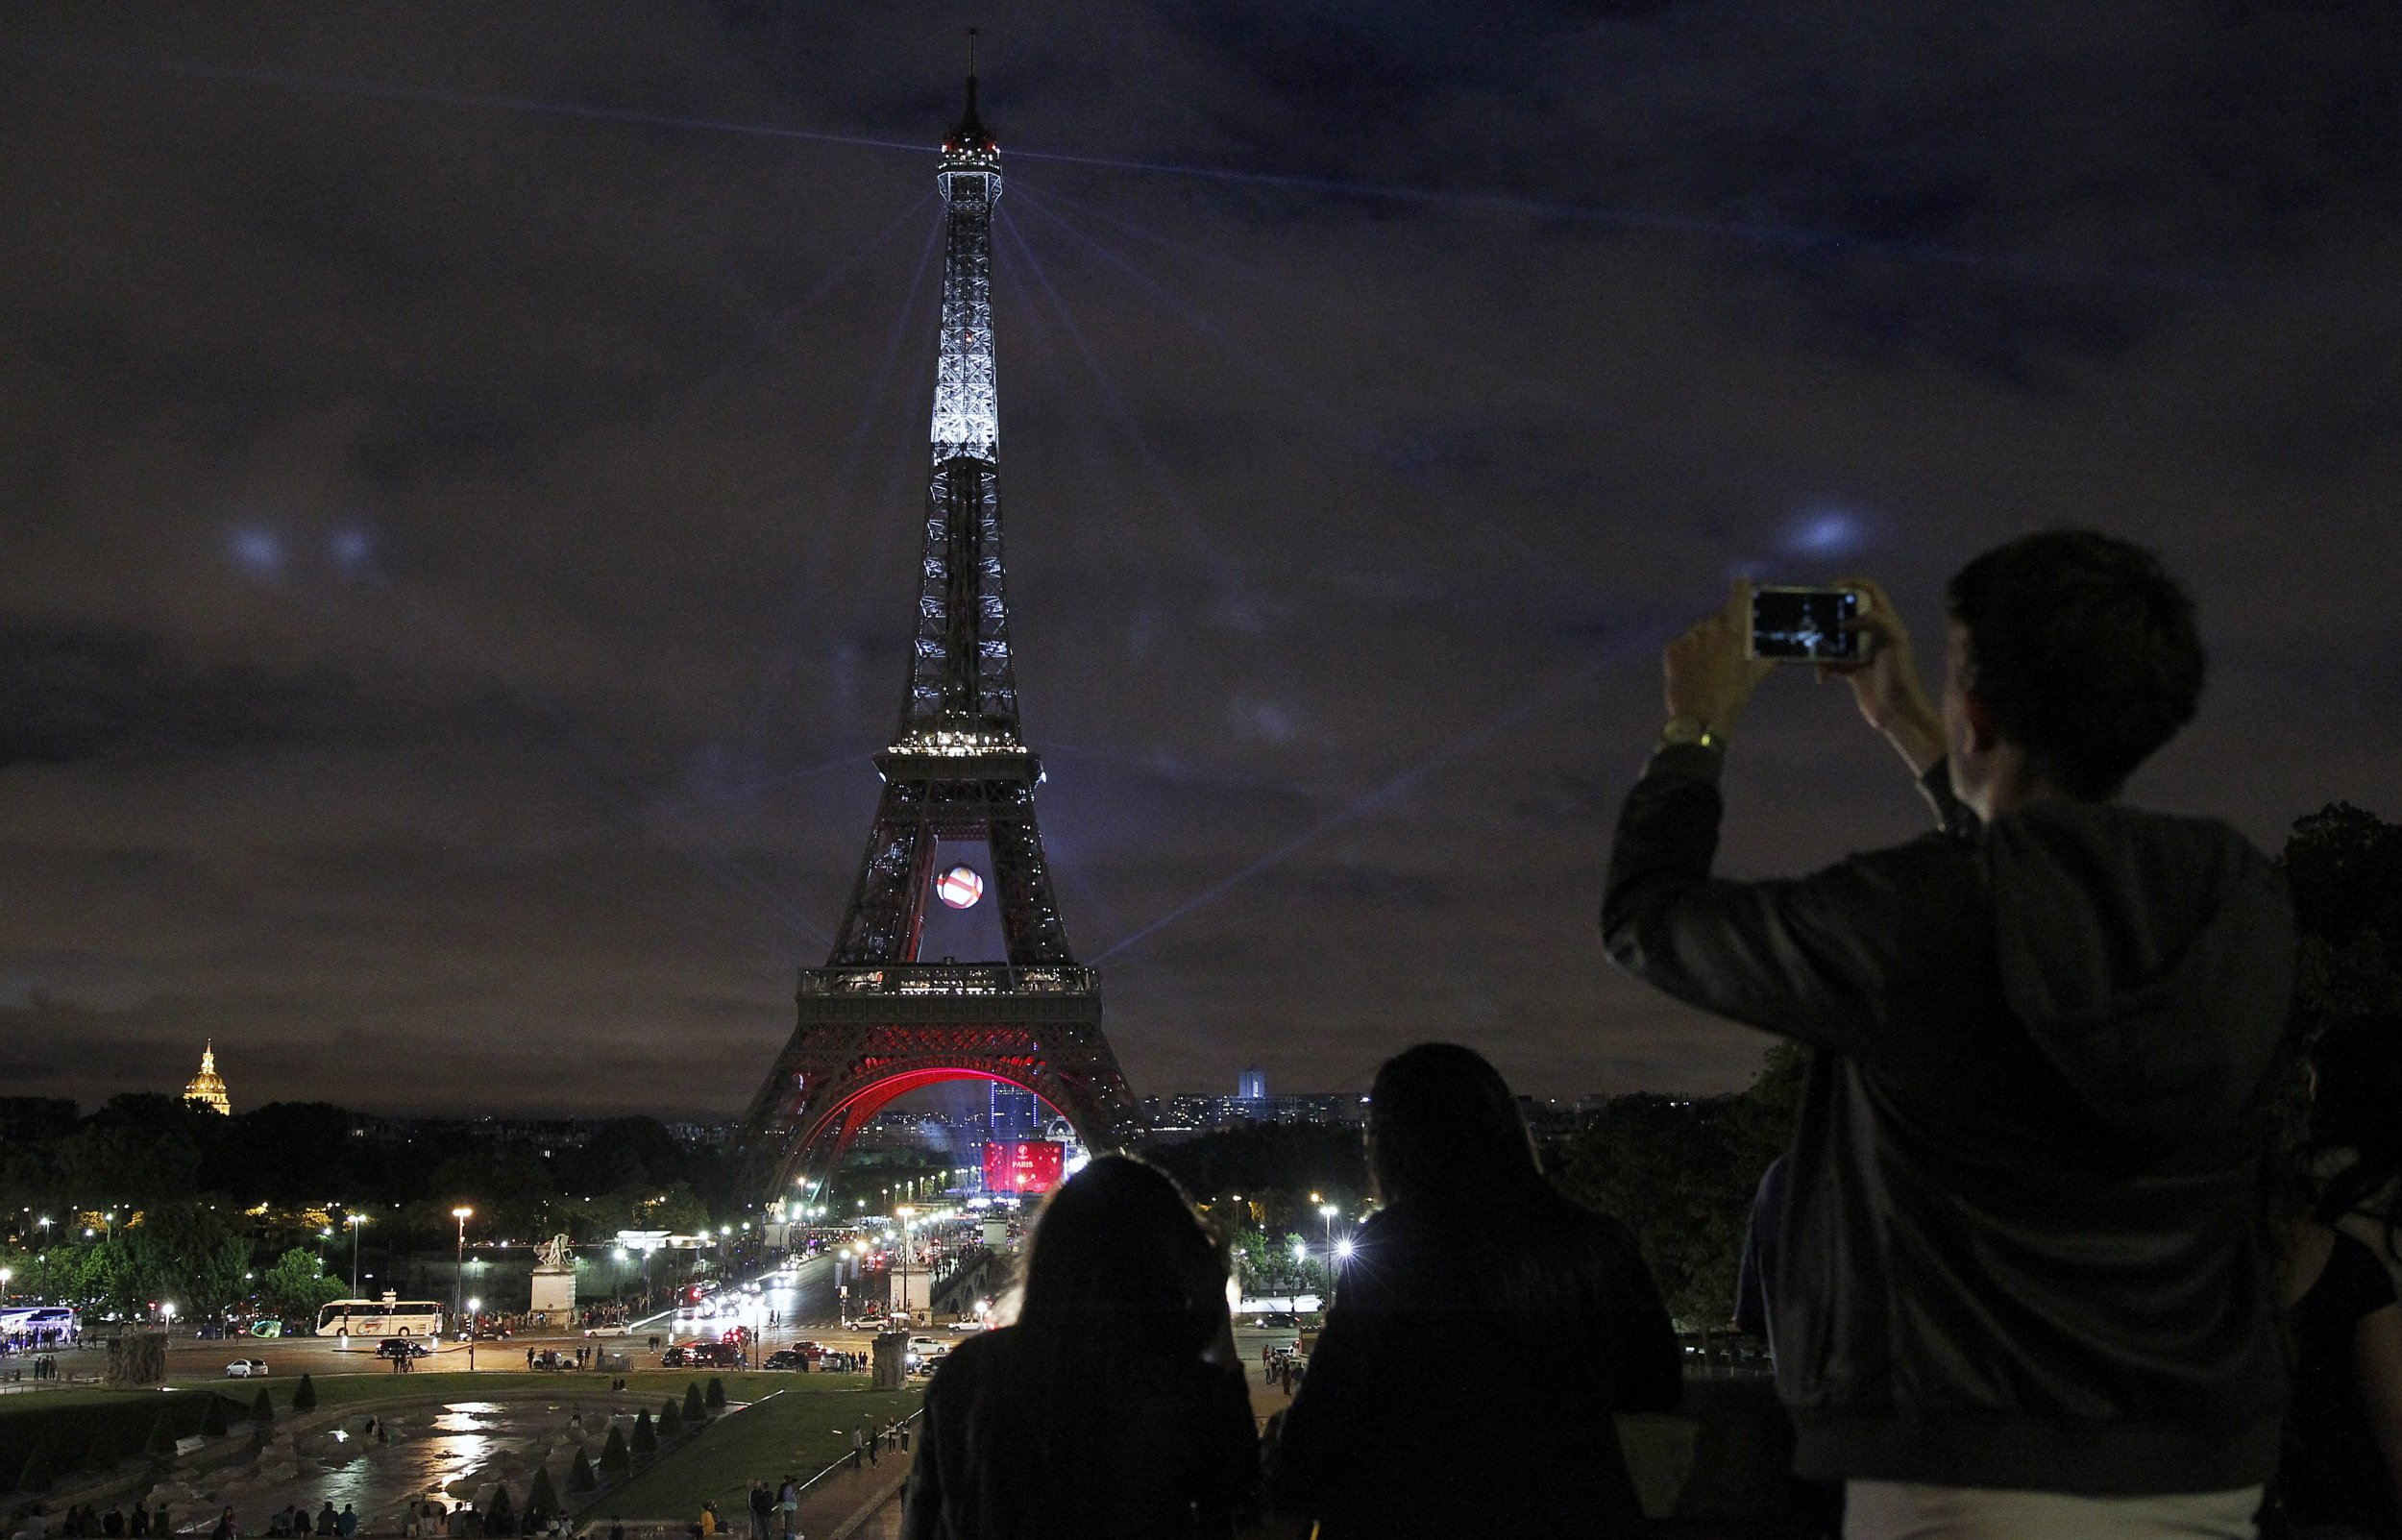 Hd wallpapers of eiffel tower at night